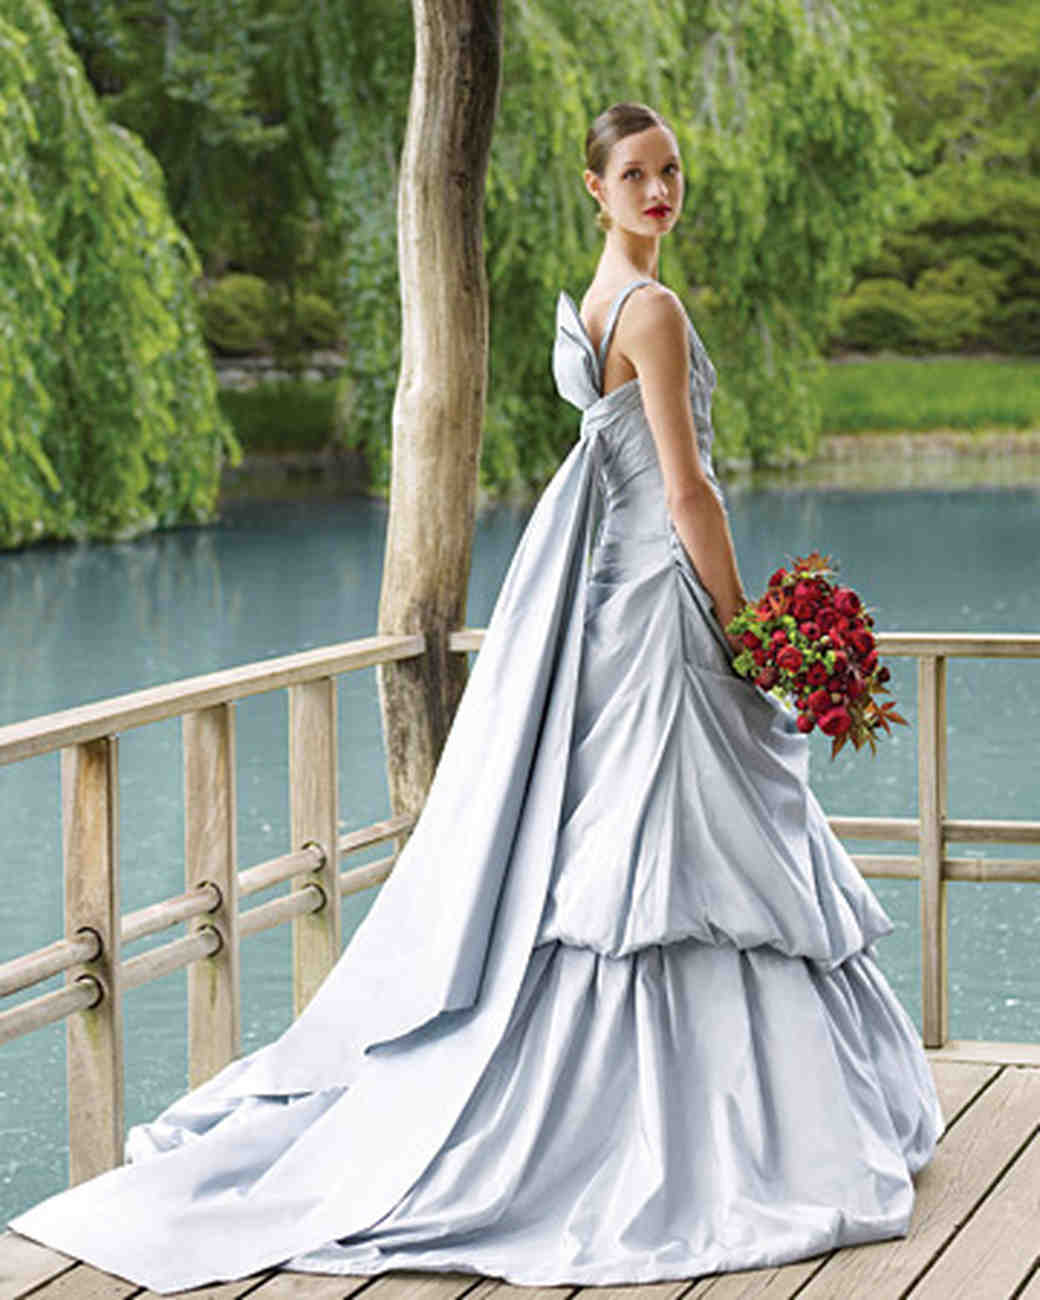 Pictures Of Gowns For Wedding: Perfect Gowns For An Outdoor Wedding